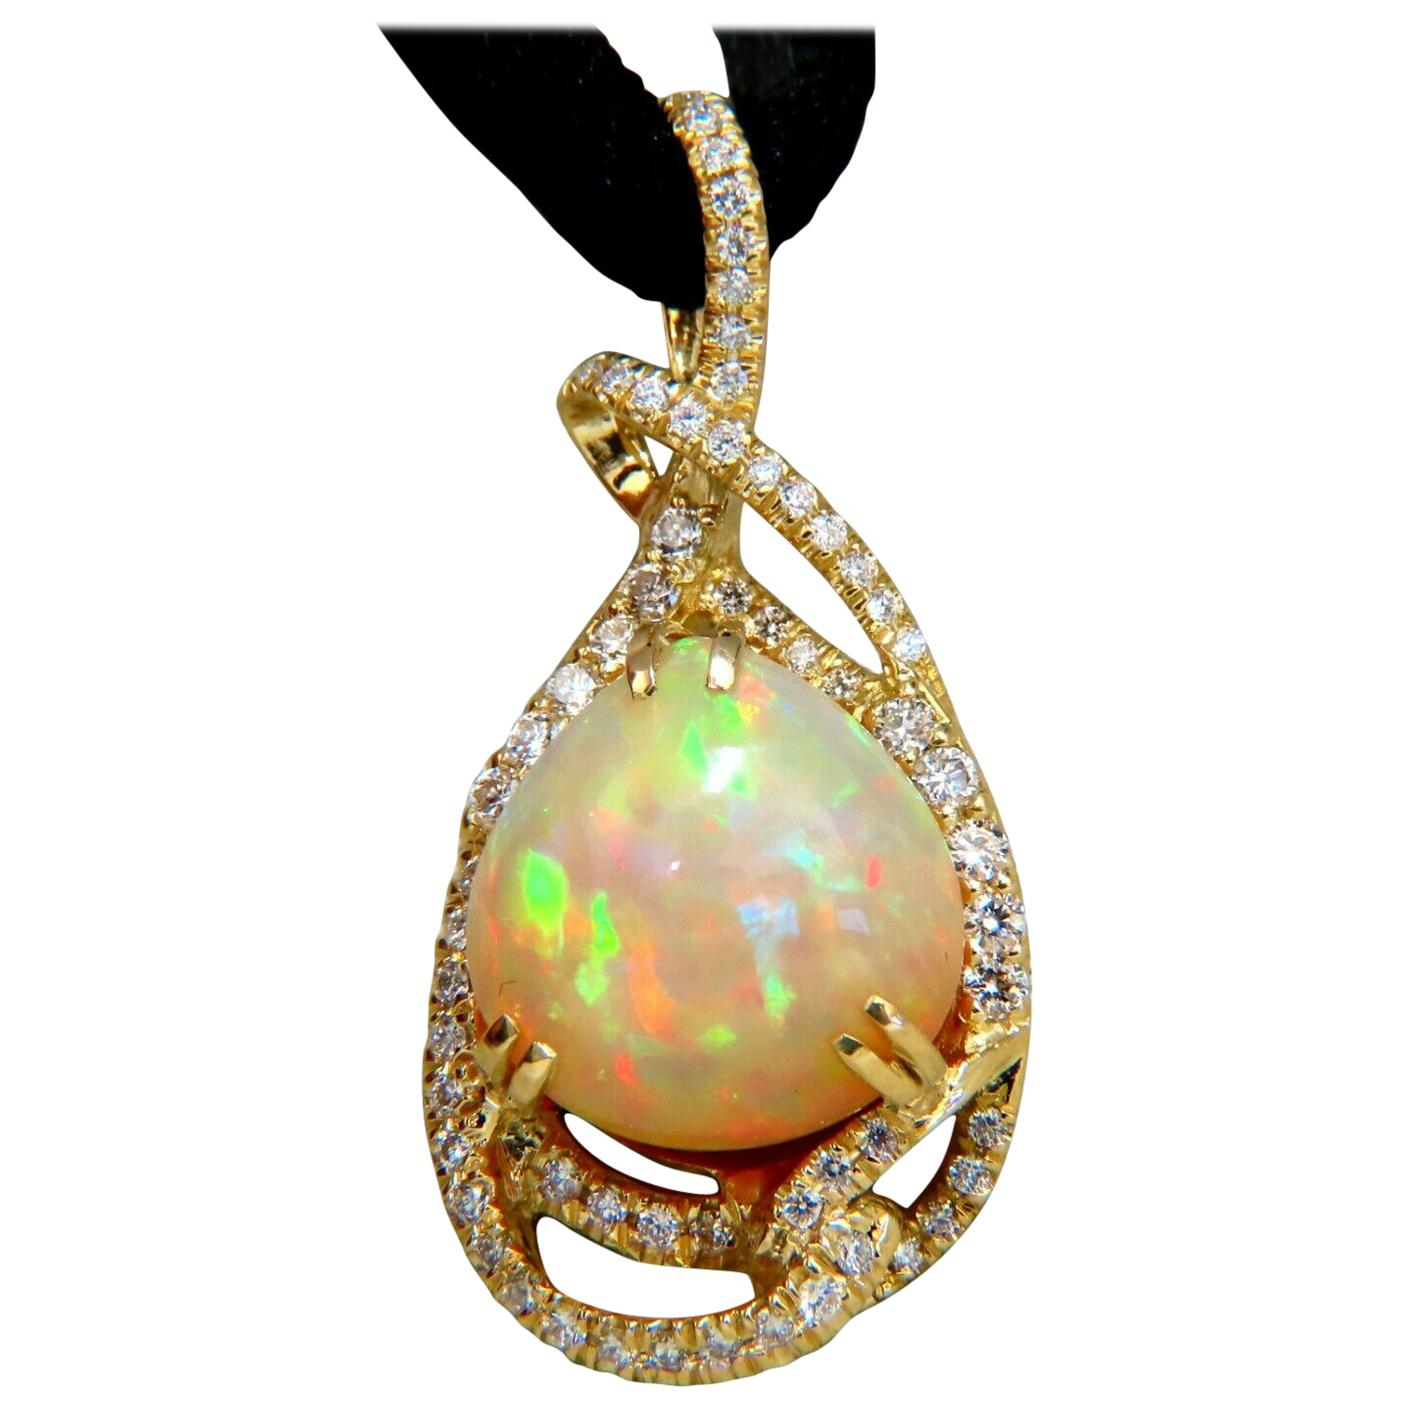 e572cf6bb Antique Opal Pendant Necklaces - 268 For Sale at 1stdibs